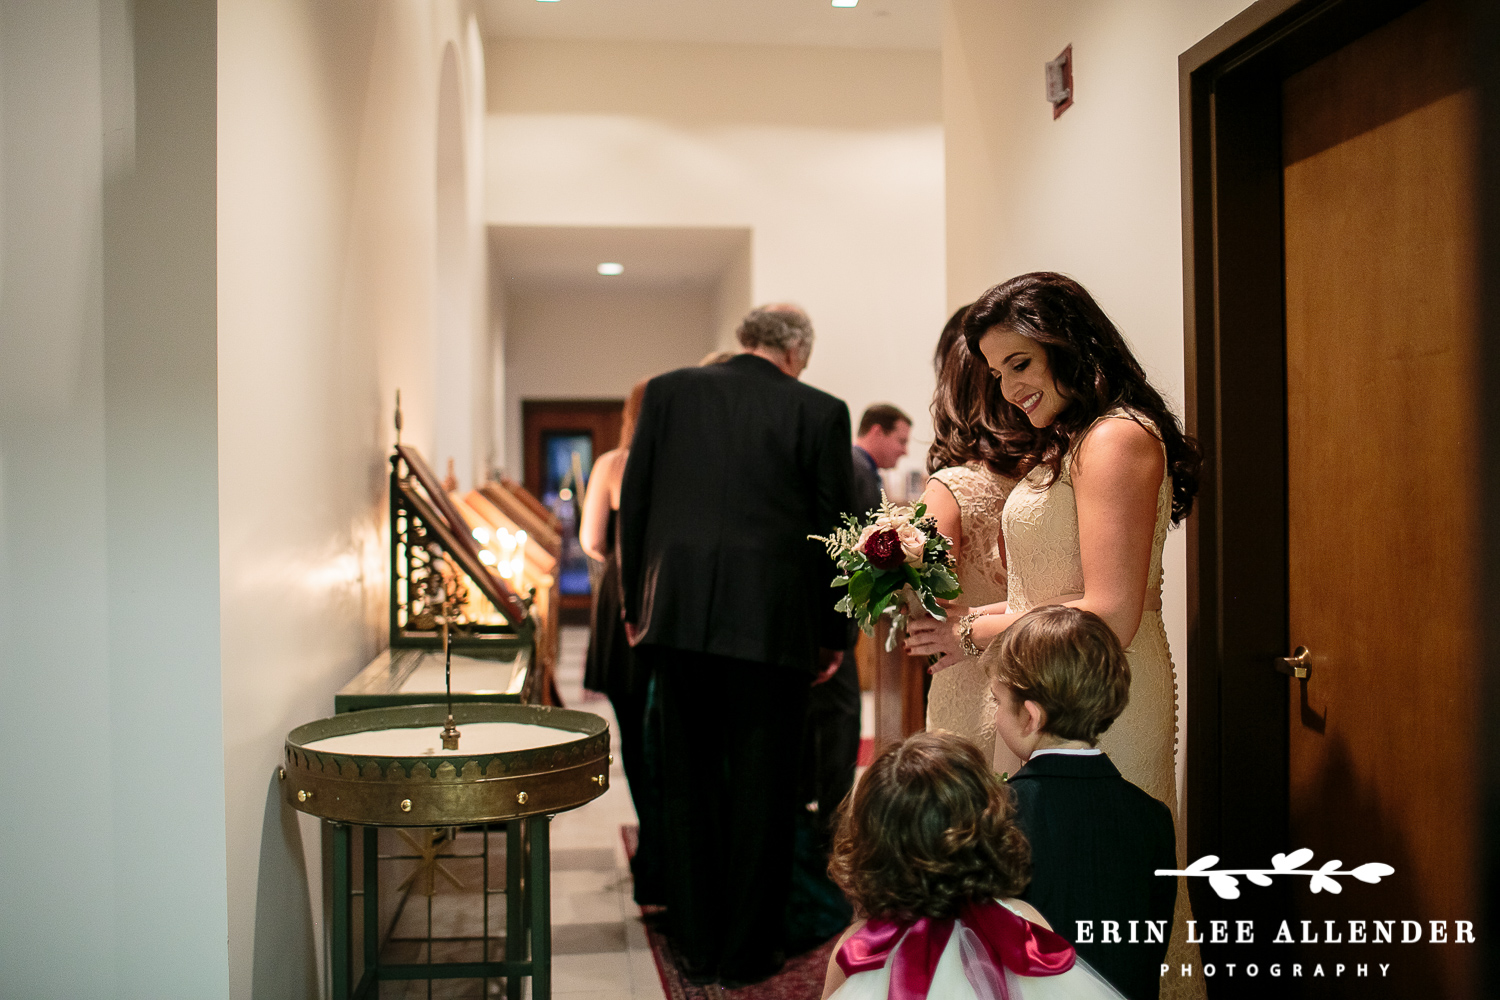 Maid_Of_Honor_Looks_at_Ring_Bearer